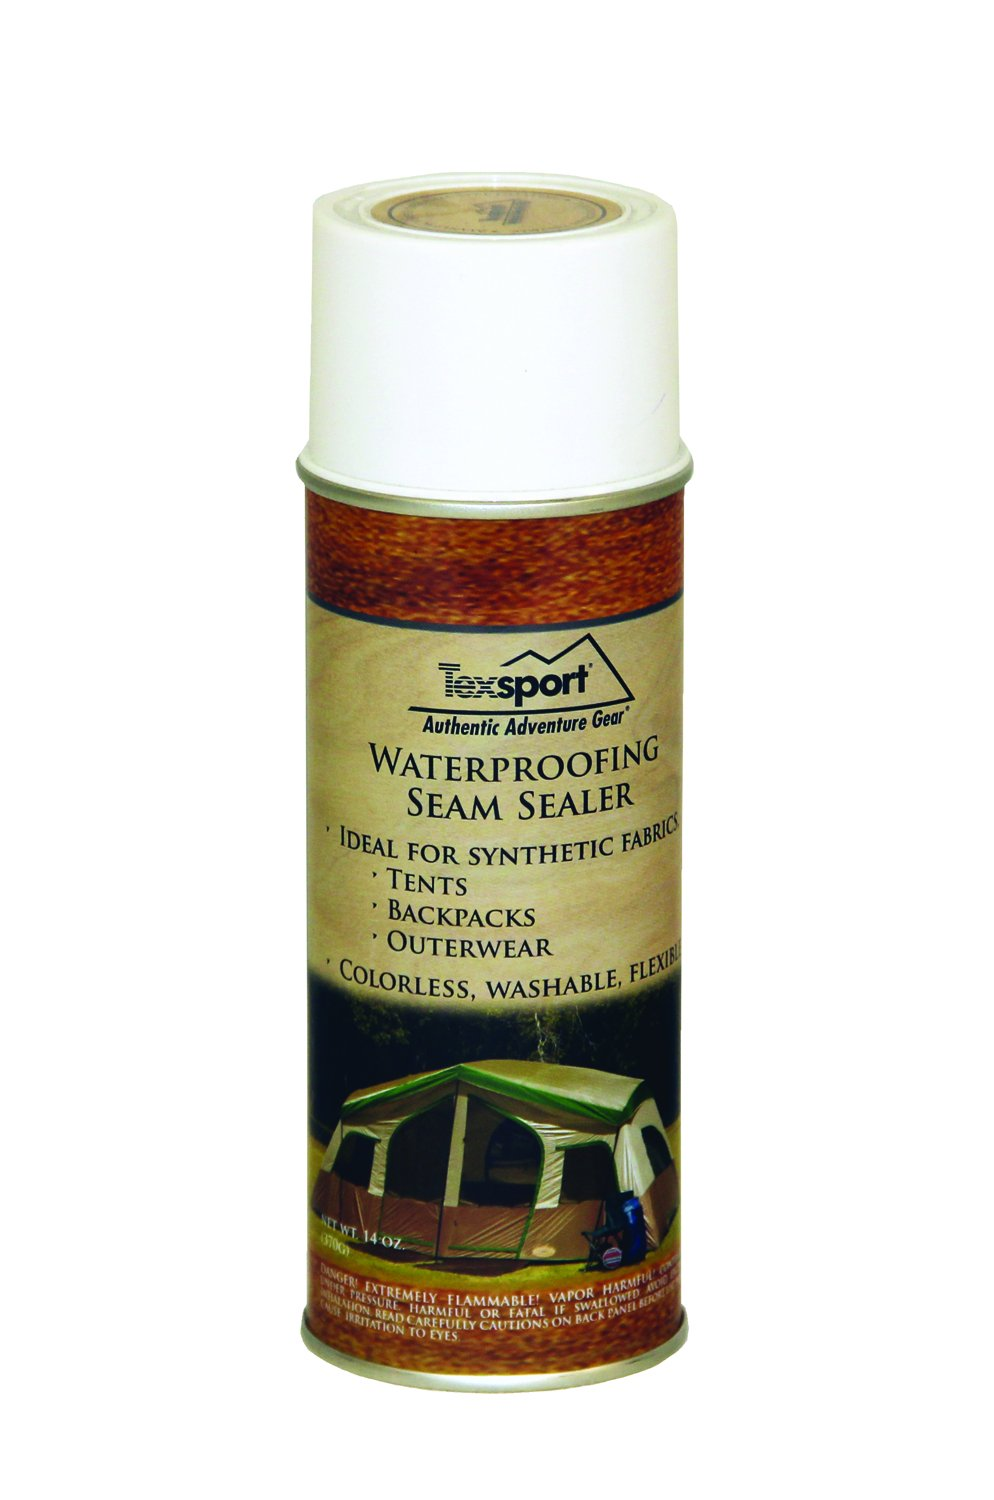 Texsport Polyurethane Waterproof Seam Sealer for Tents Backpacks and Outerwear Repair